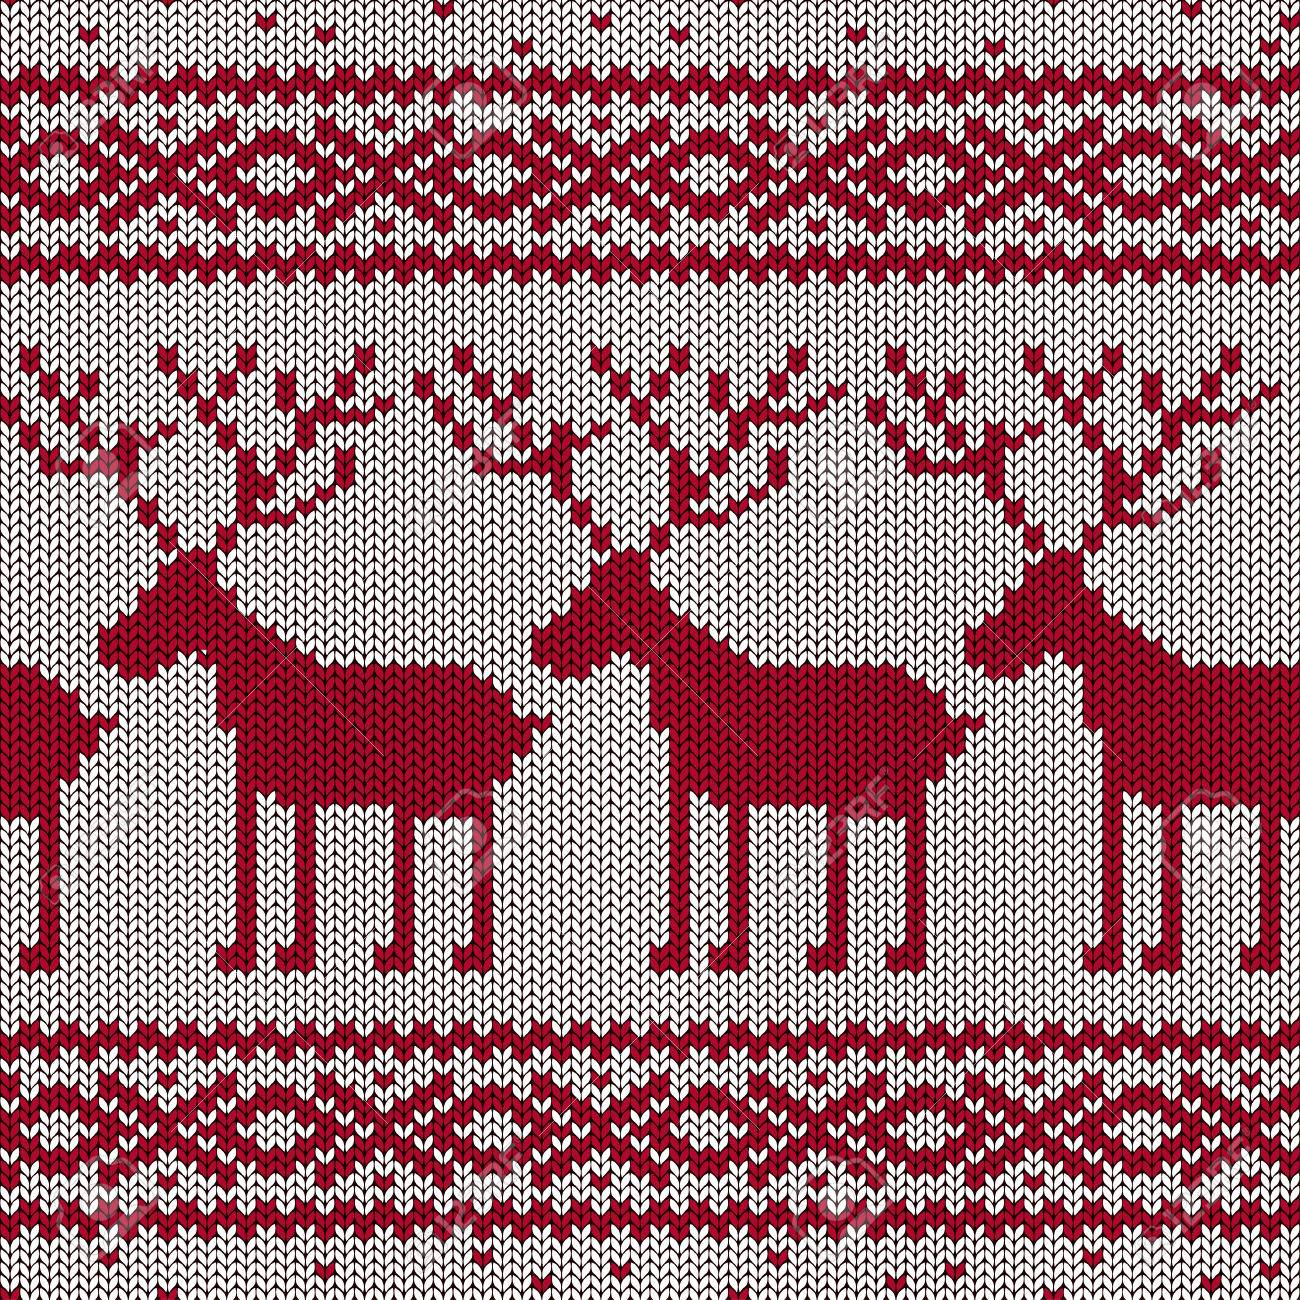 Scandinavian Knitted Seamless Pattern With Deers Royalty Free ...